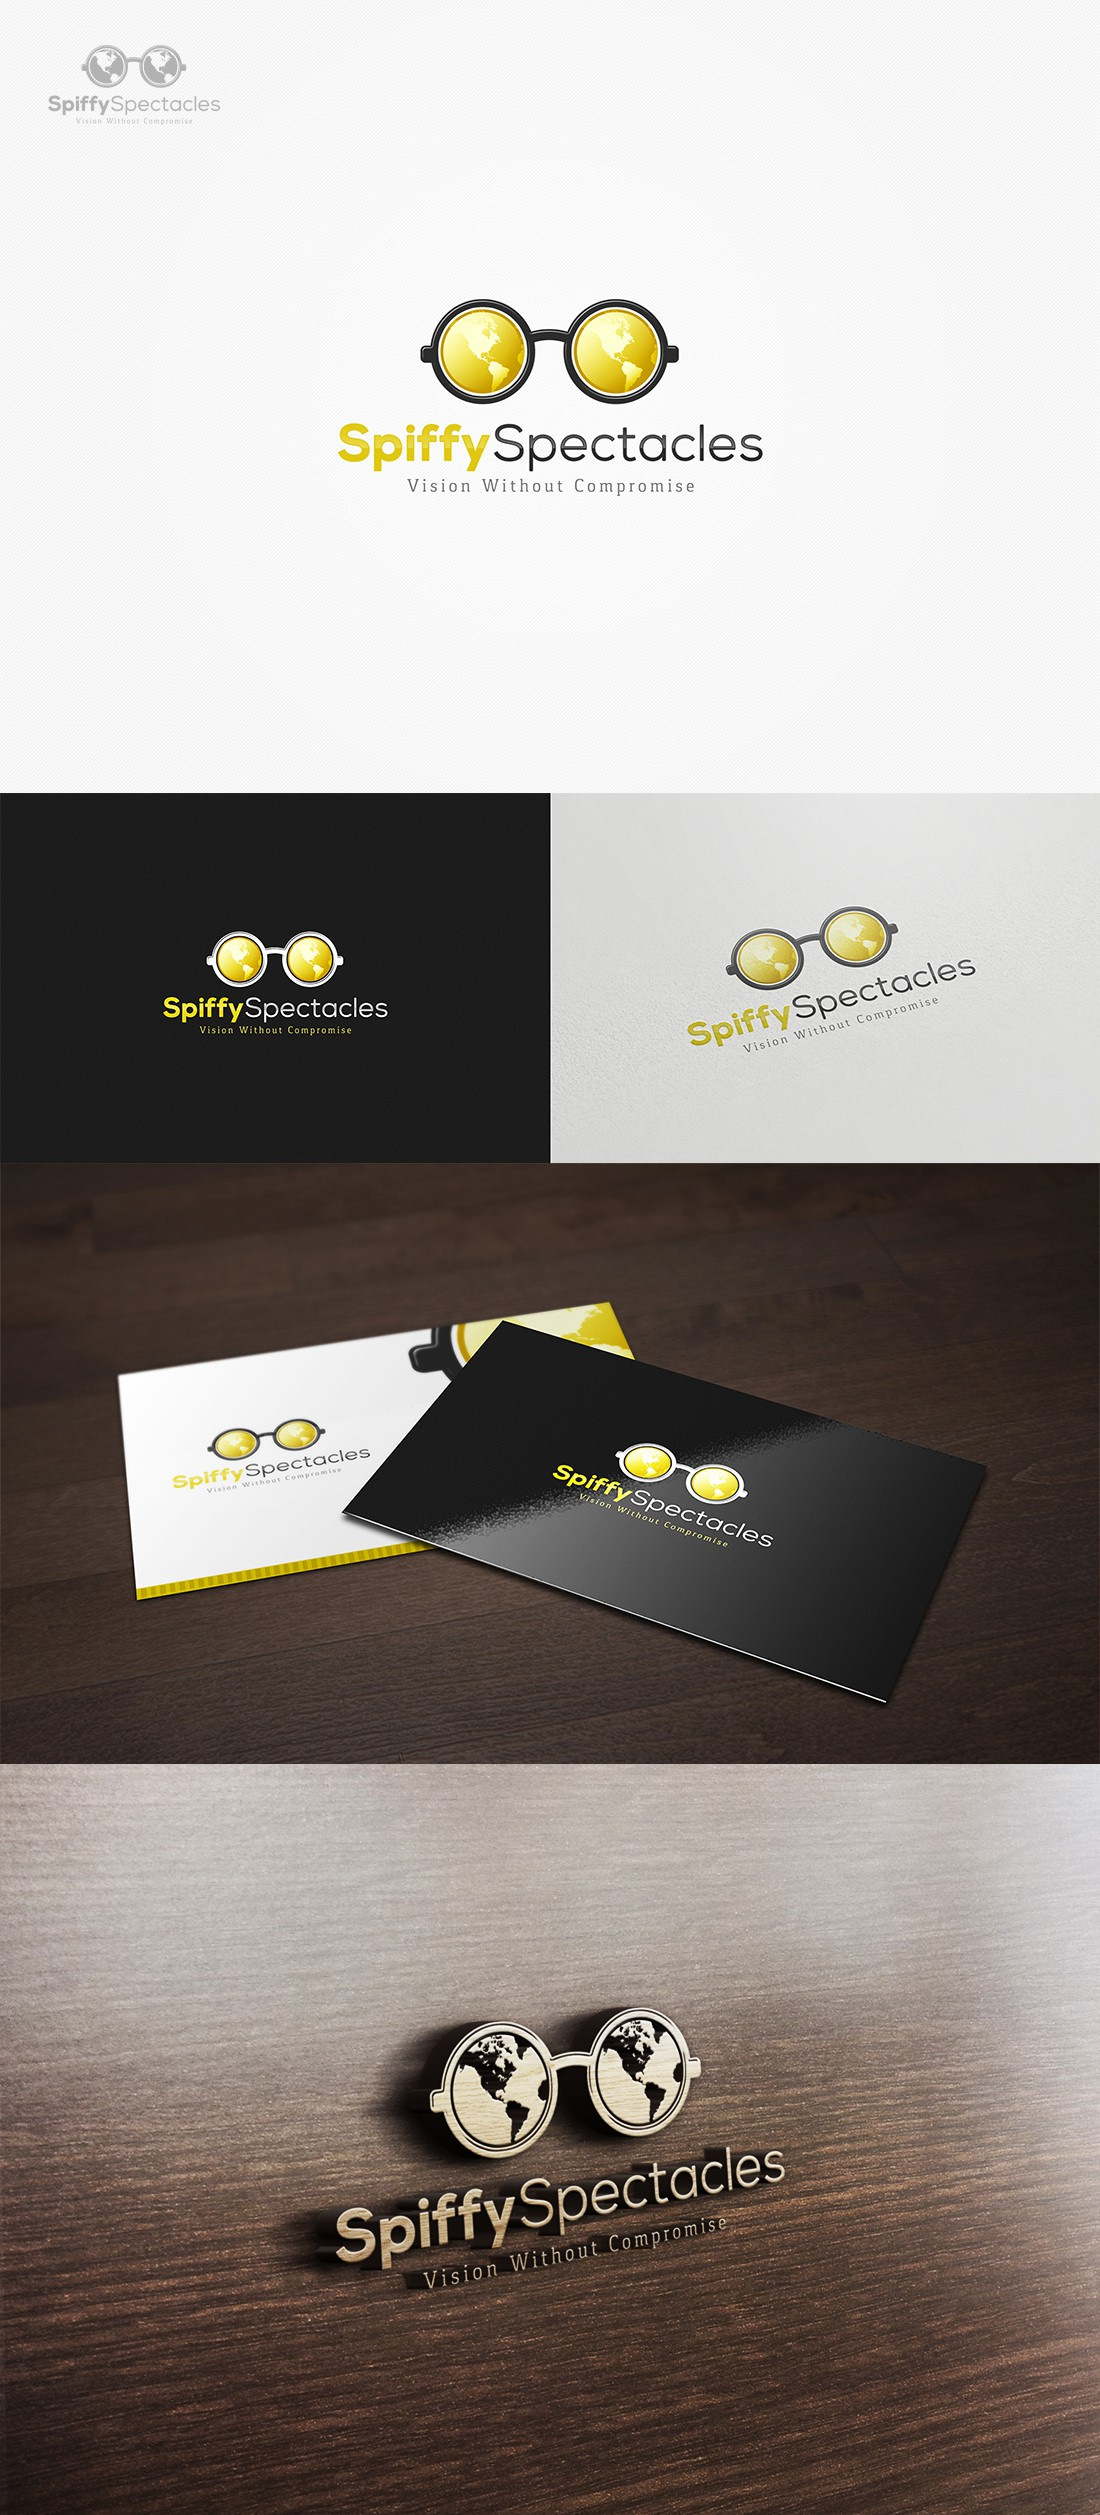 Spiffy Spectacles needs creative logo package!